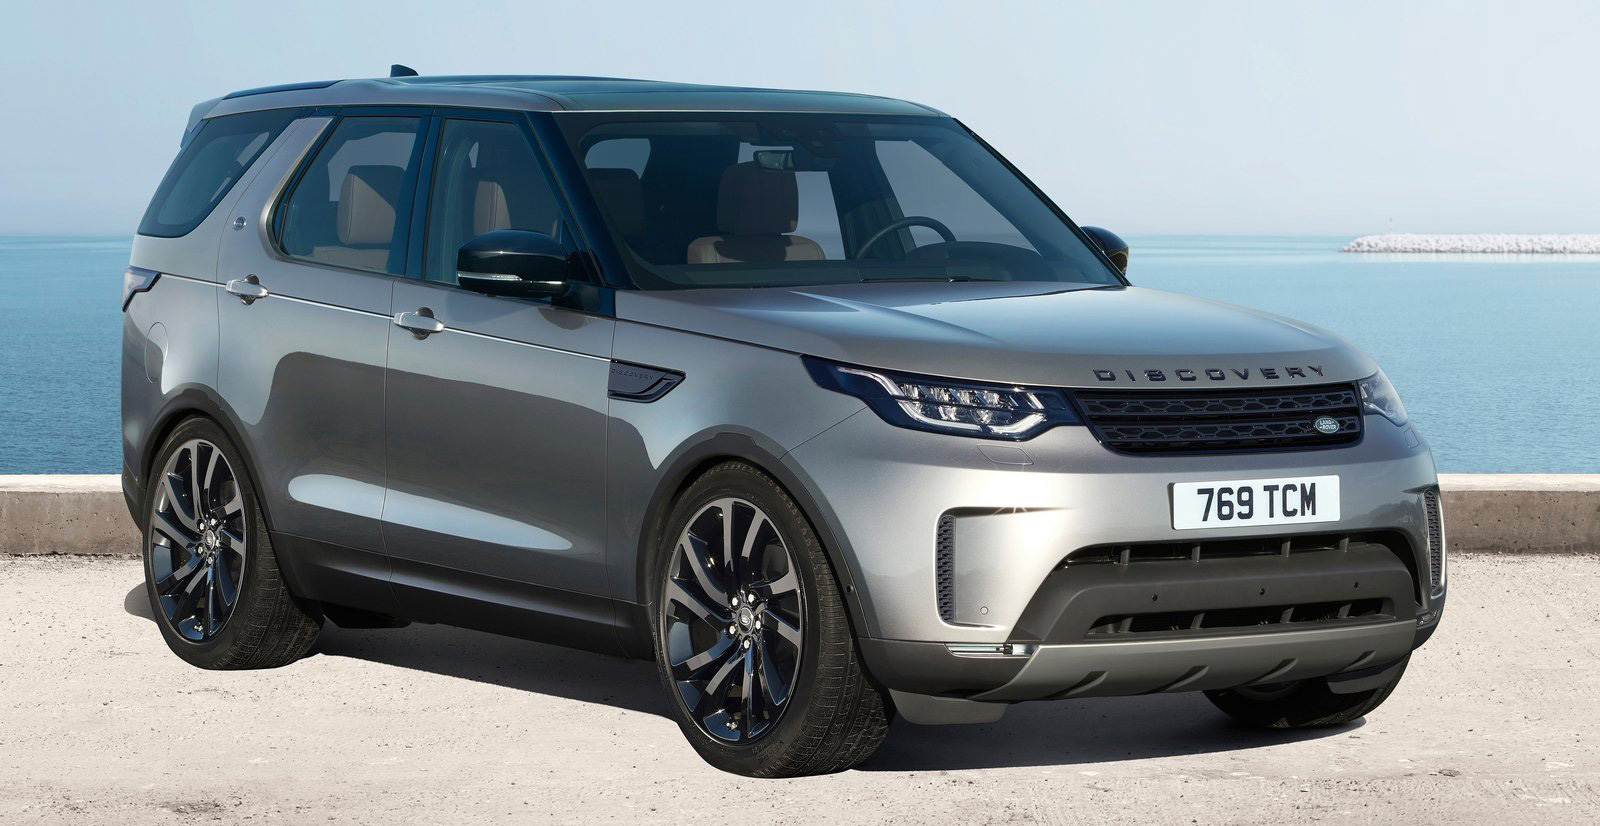 New Land Rover Discovery Full 7 Seater 480 Kg Lighter